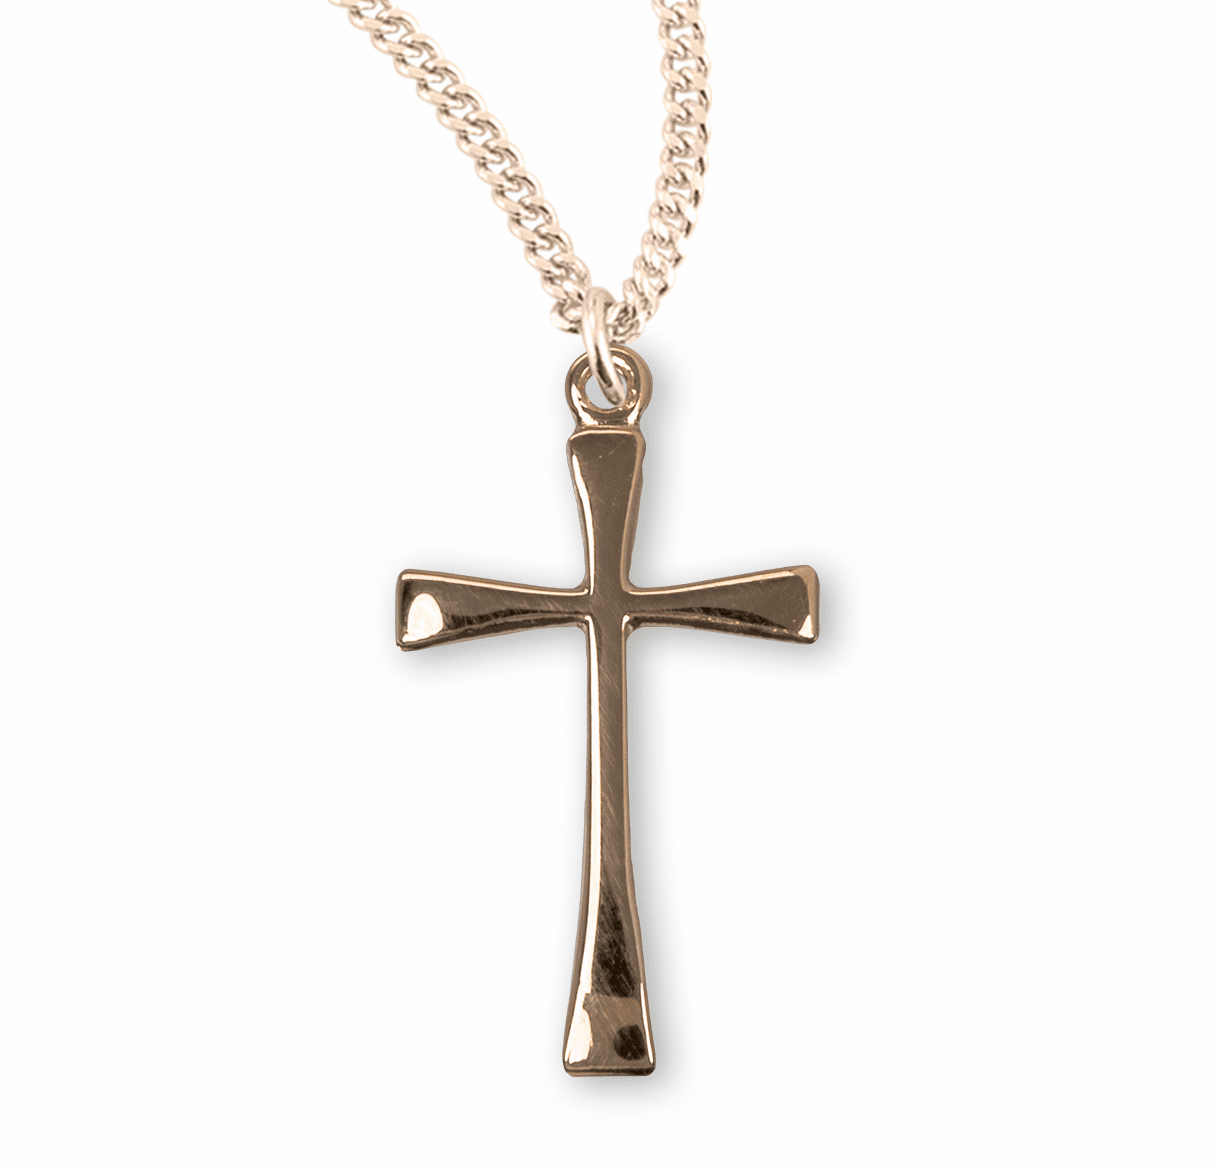 Small Gold Cross w/Tapered Ends Necklace by HMH Religious